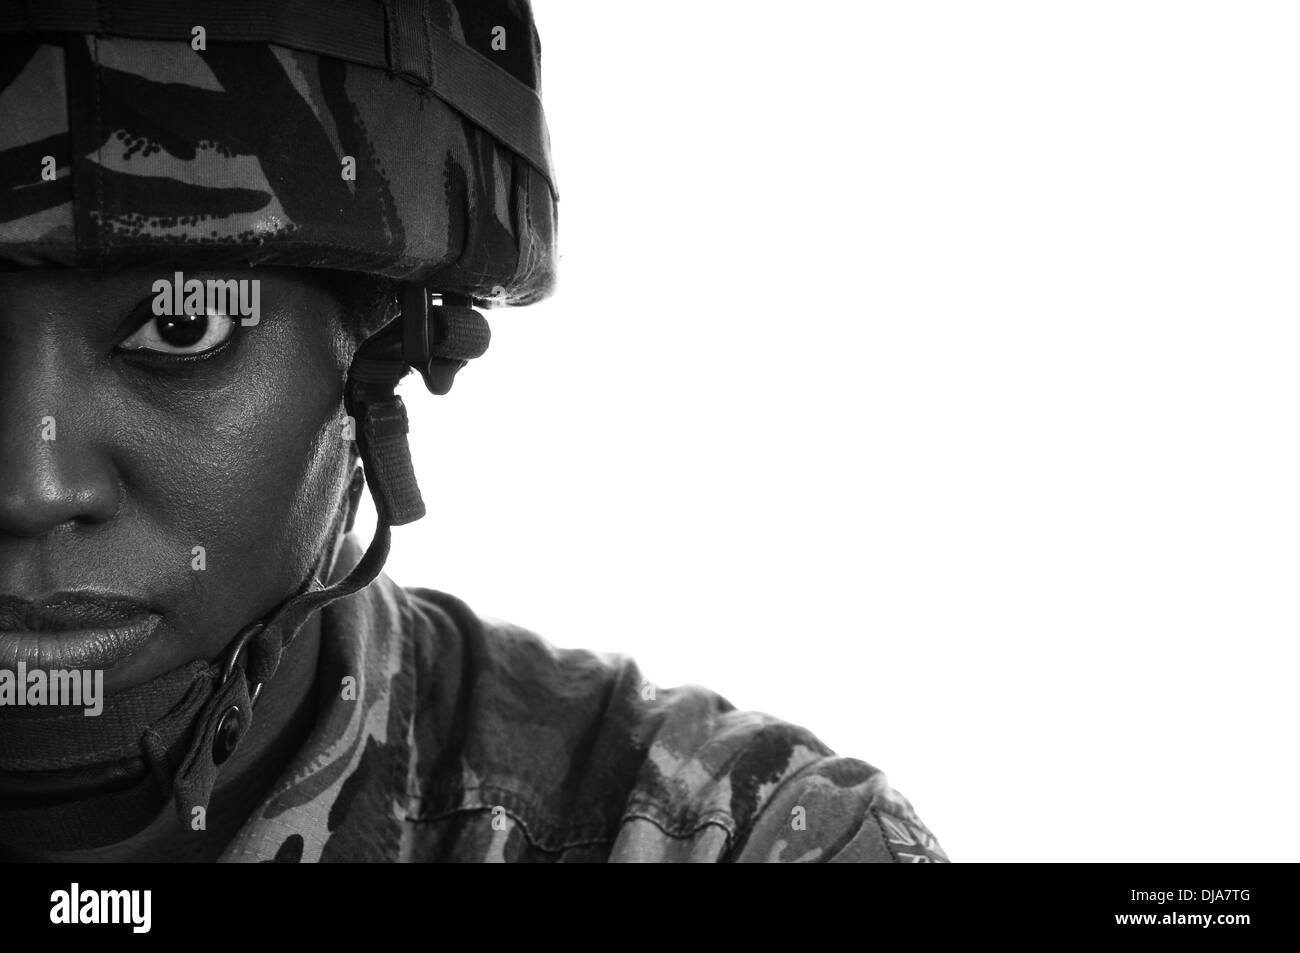 Half face portrait of a black female British soldier against a white background. - Stock Image